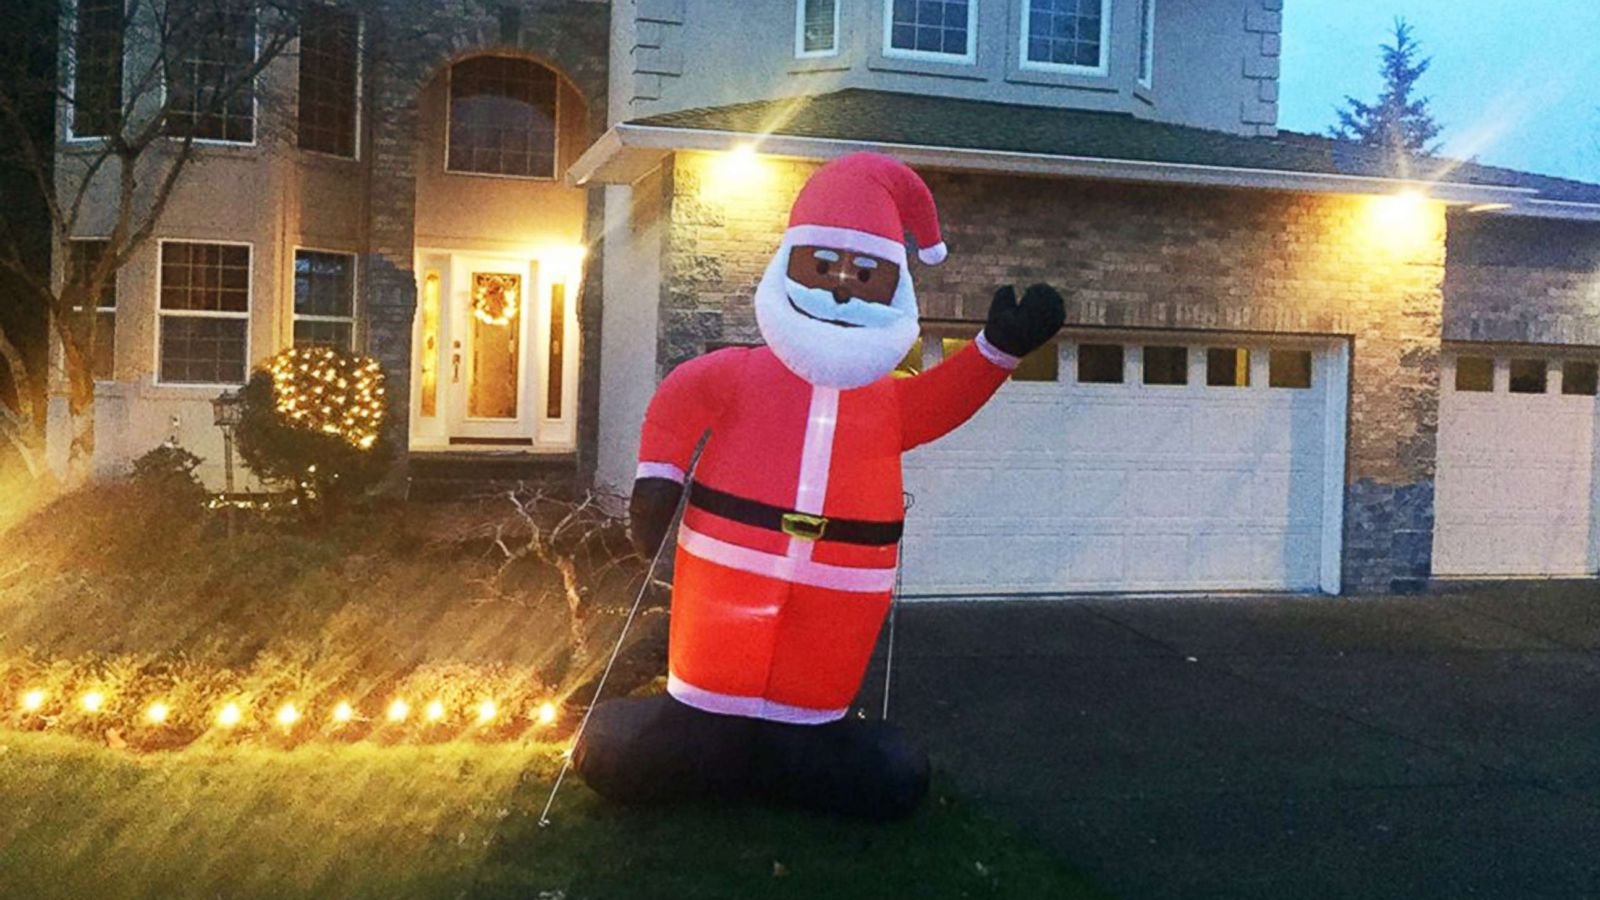 Man Caught On Camera Trying To Steal Christmas Inflatables